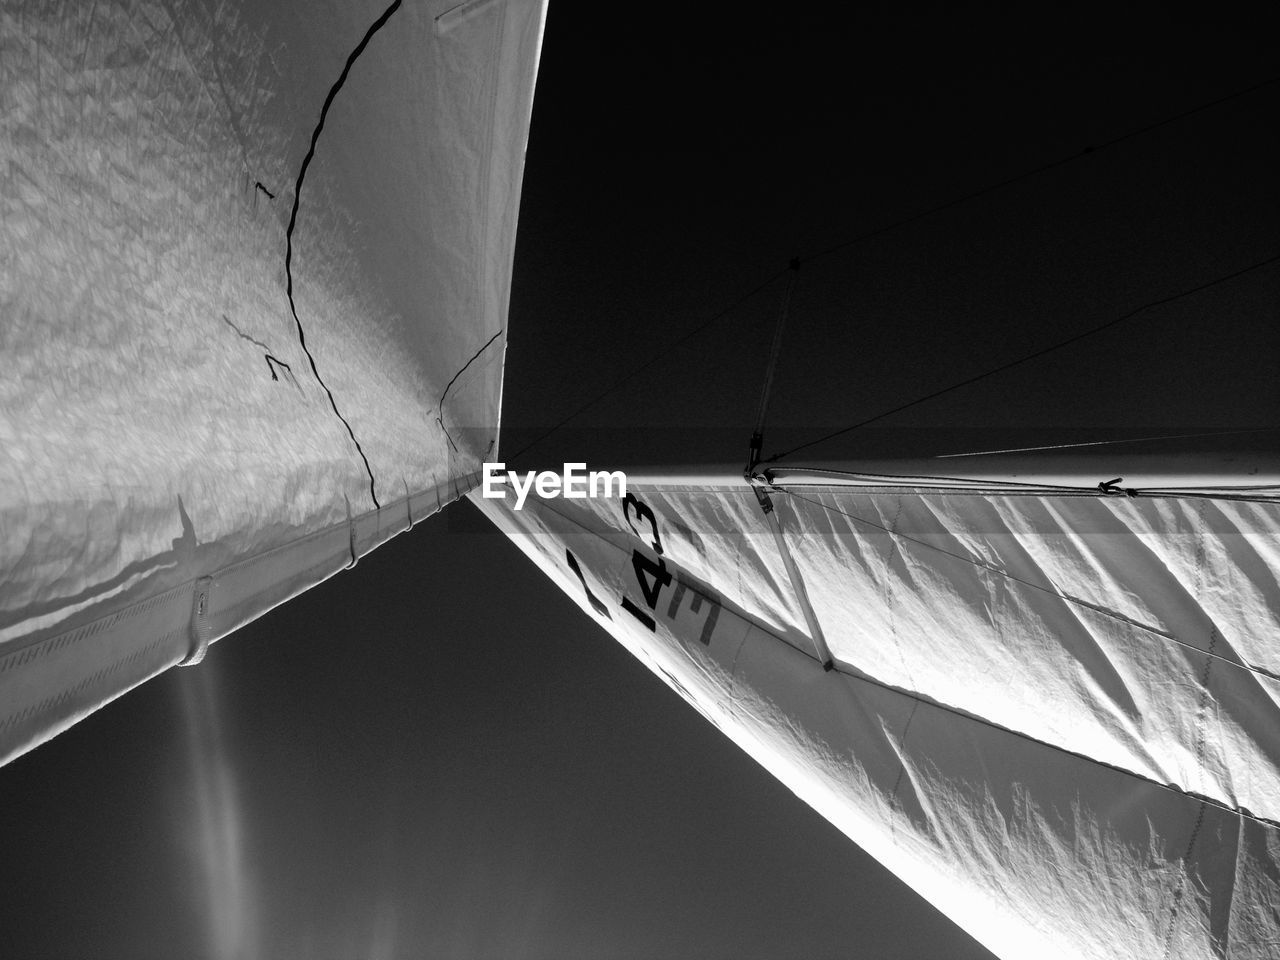 Low Angle View Of Boat Canvas Against Sky